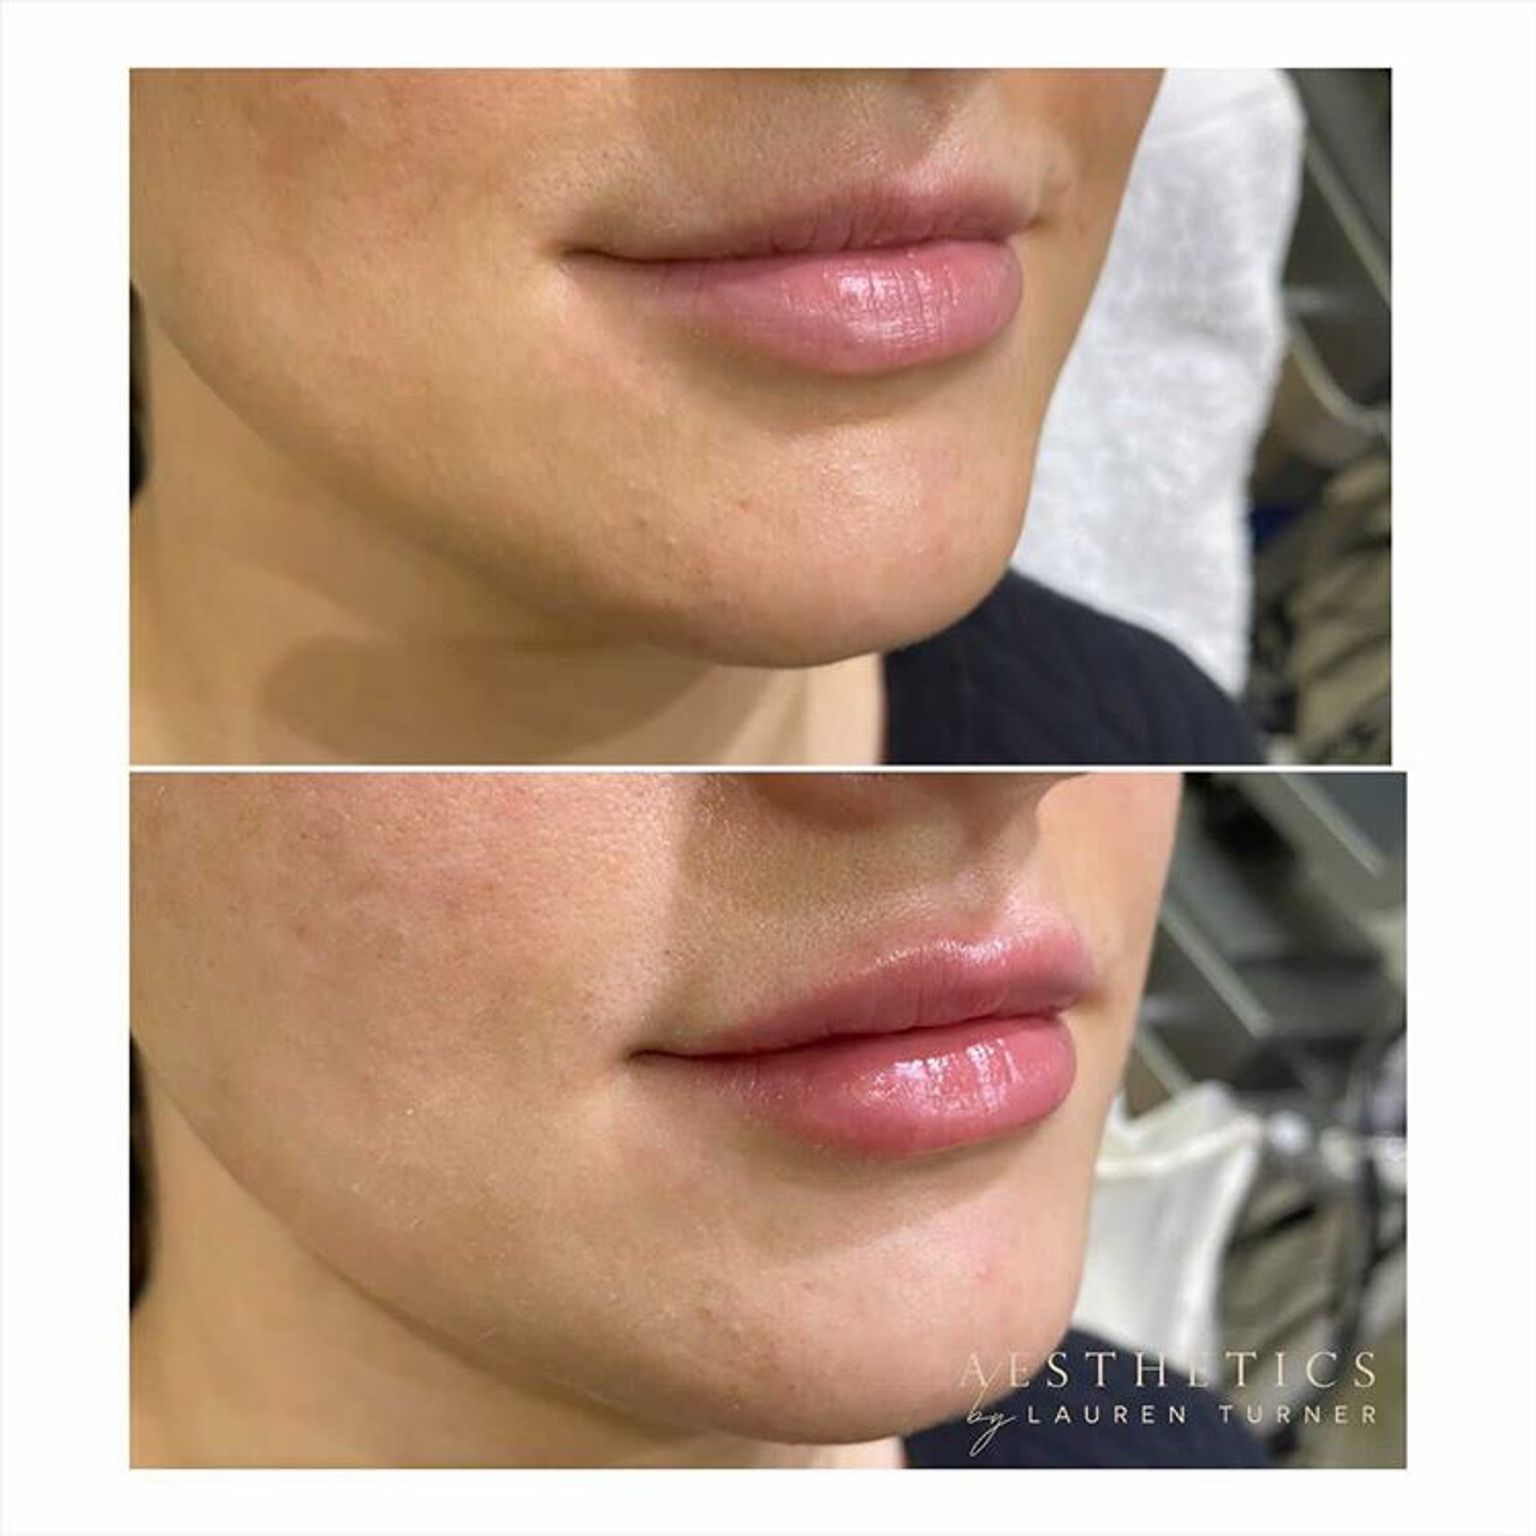 Lauren Turner - before and after lip fillers - Glowday